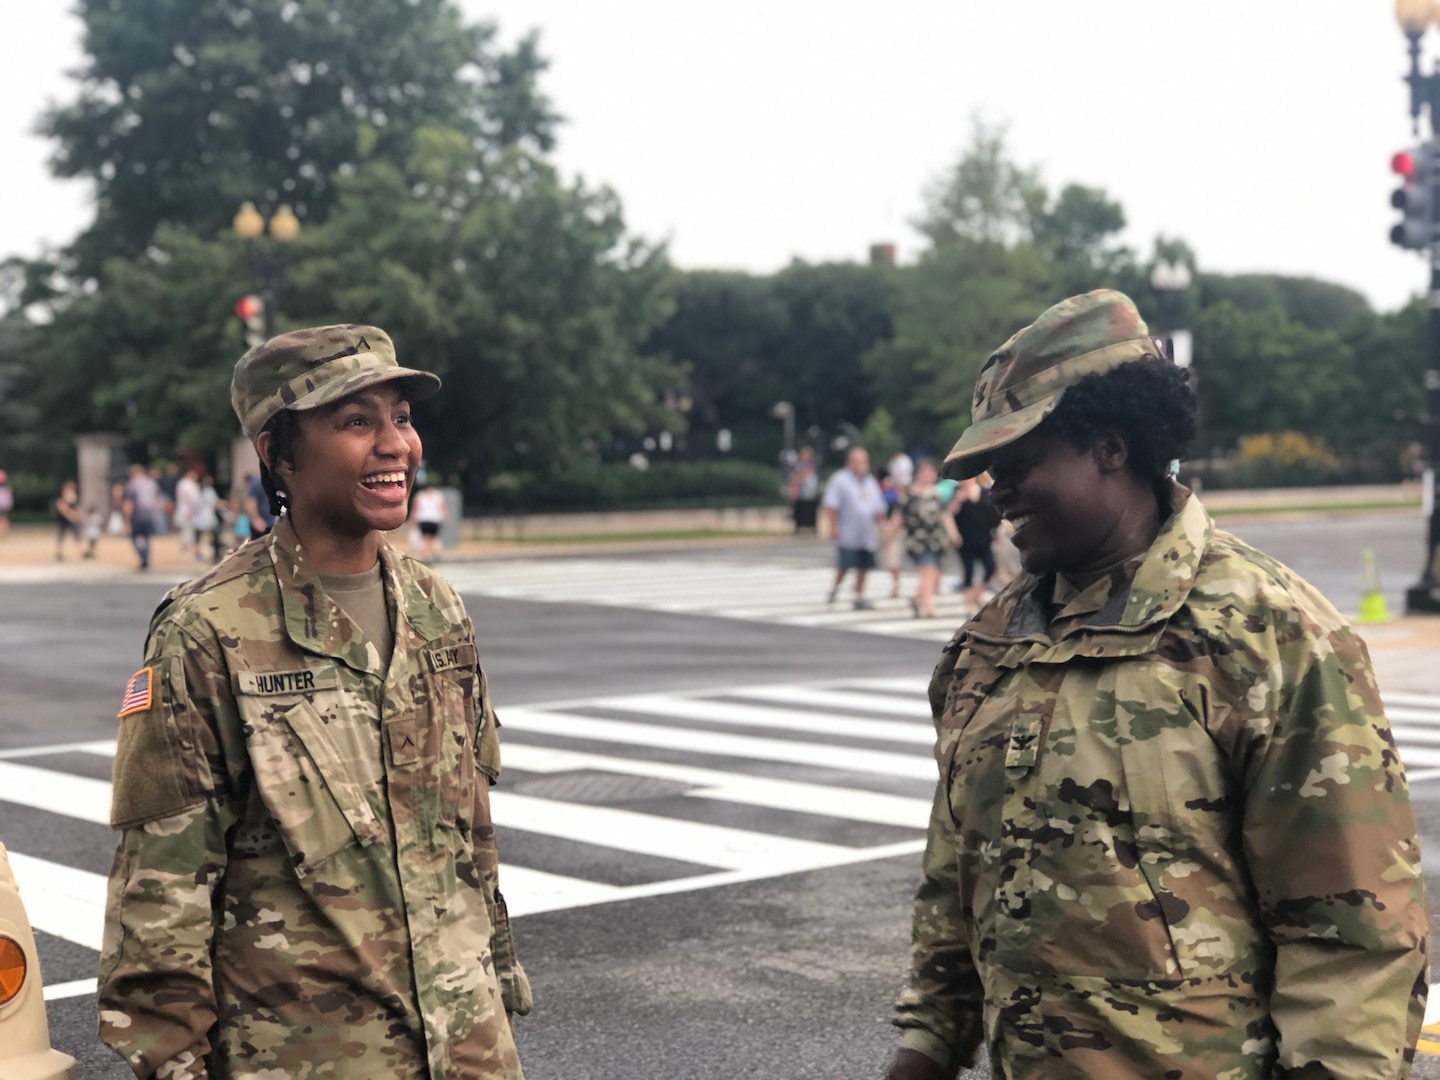 Col. Renee Gore, Joint Task Force Independence commander, District of Columbia National Guard, speaks to a Soldier during the Independence Day celebration July 4th in Washington D.C. Approximately 800 D.C. National Guard members provided support to the D.C. Metropolitan Police and United States Park Police during the Independence Day celebration.